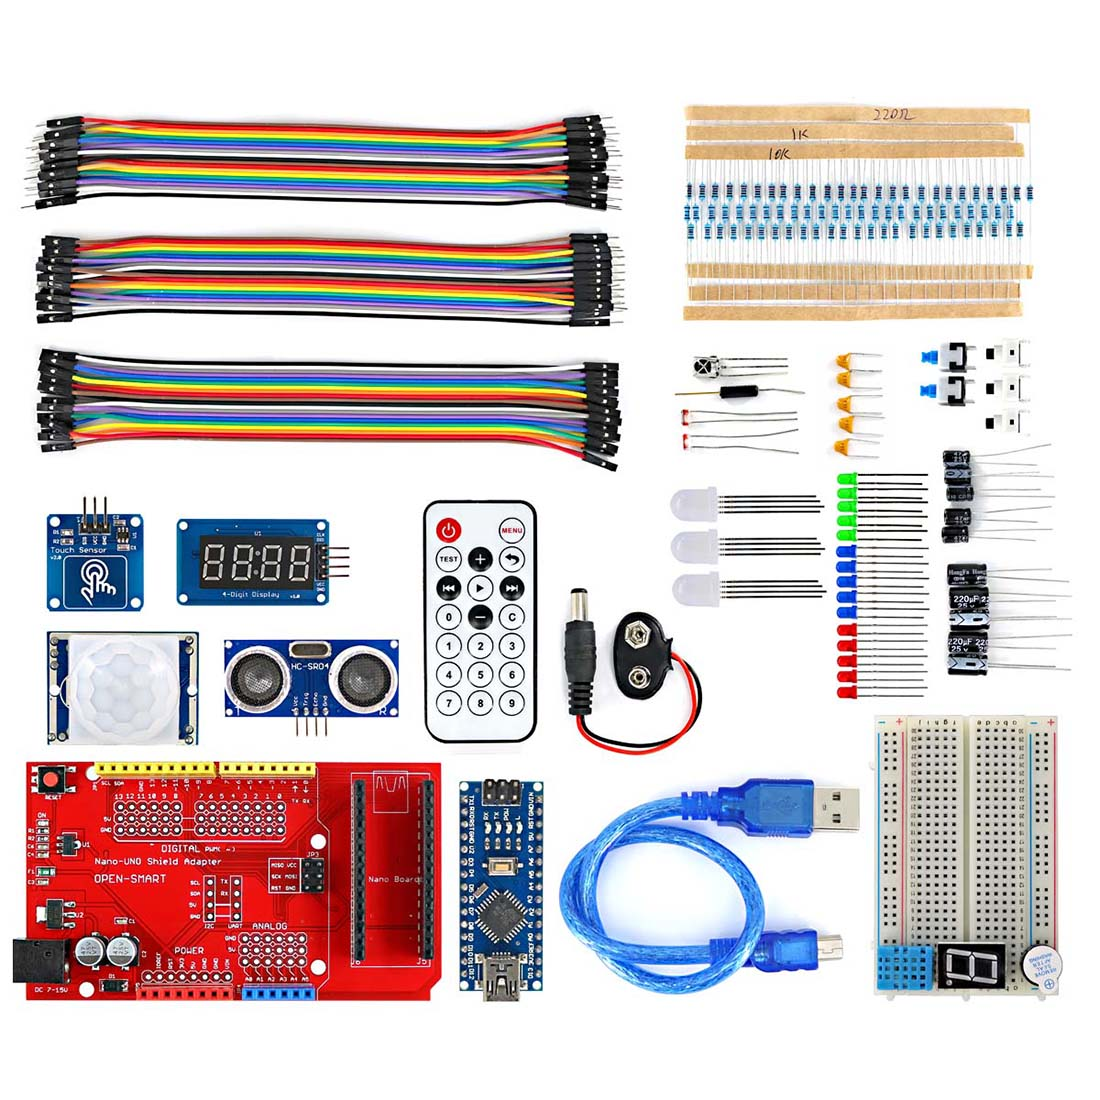 MODIKER  High Tech FOR Nano BreadBoard Kit FOR IO Expansion Board Sensor Module For Arduino Programmable Toys